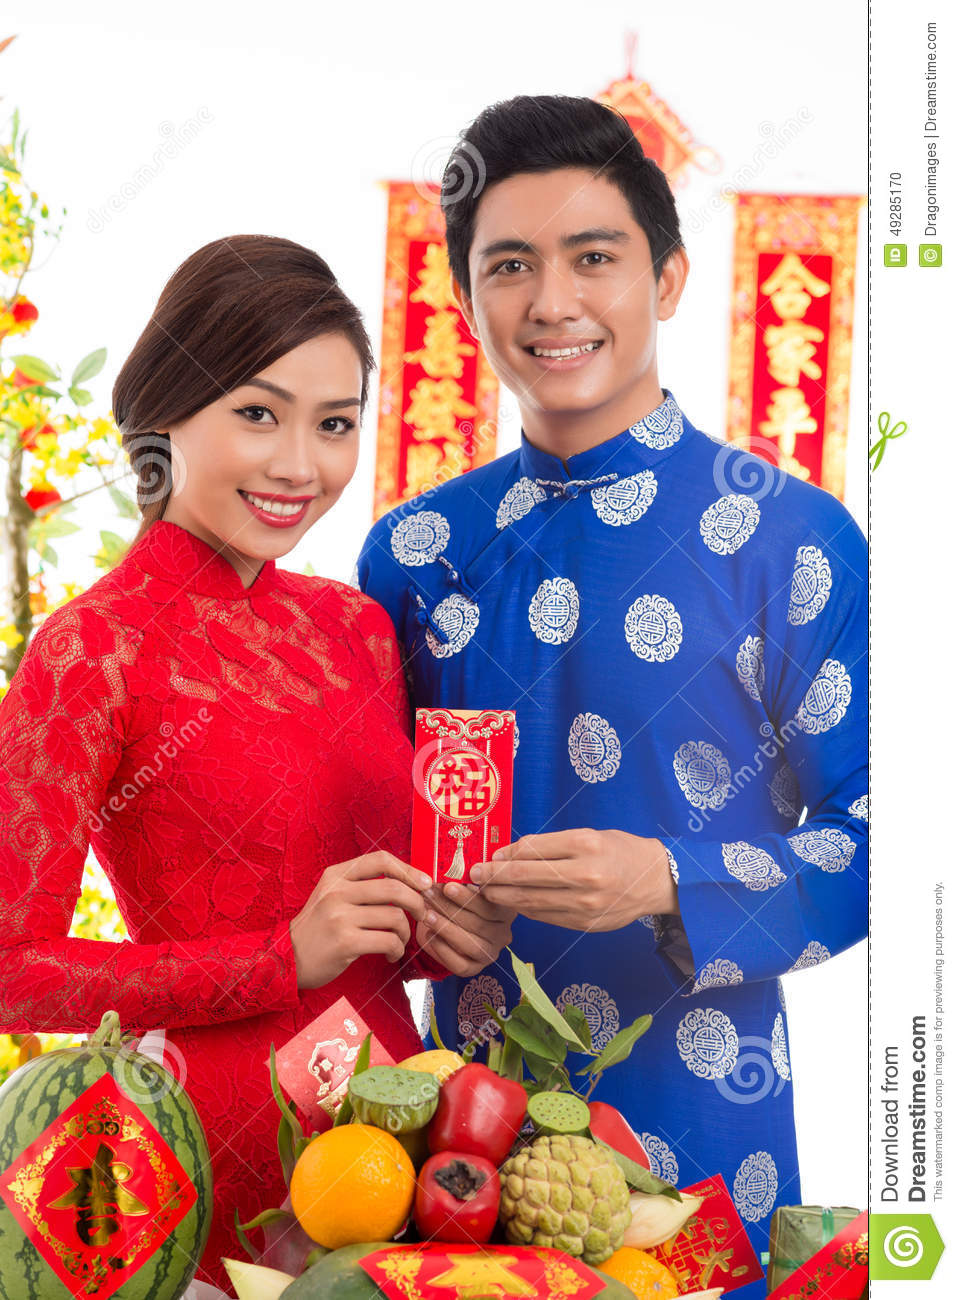 Vietnamese couple with greeting card stock photo image of greeting download vietnamese couple with greeting card stock photo image of greeting holding 49285170 m4hsunfo